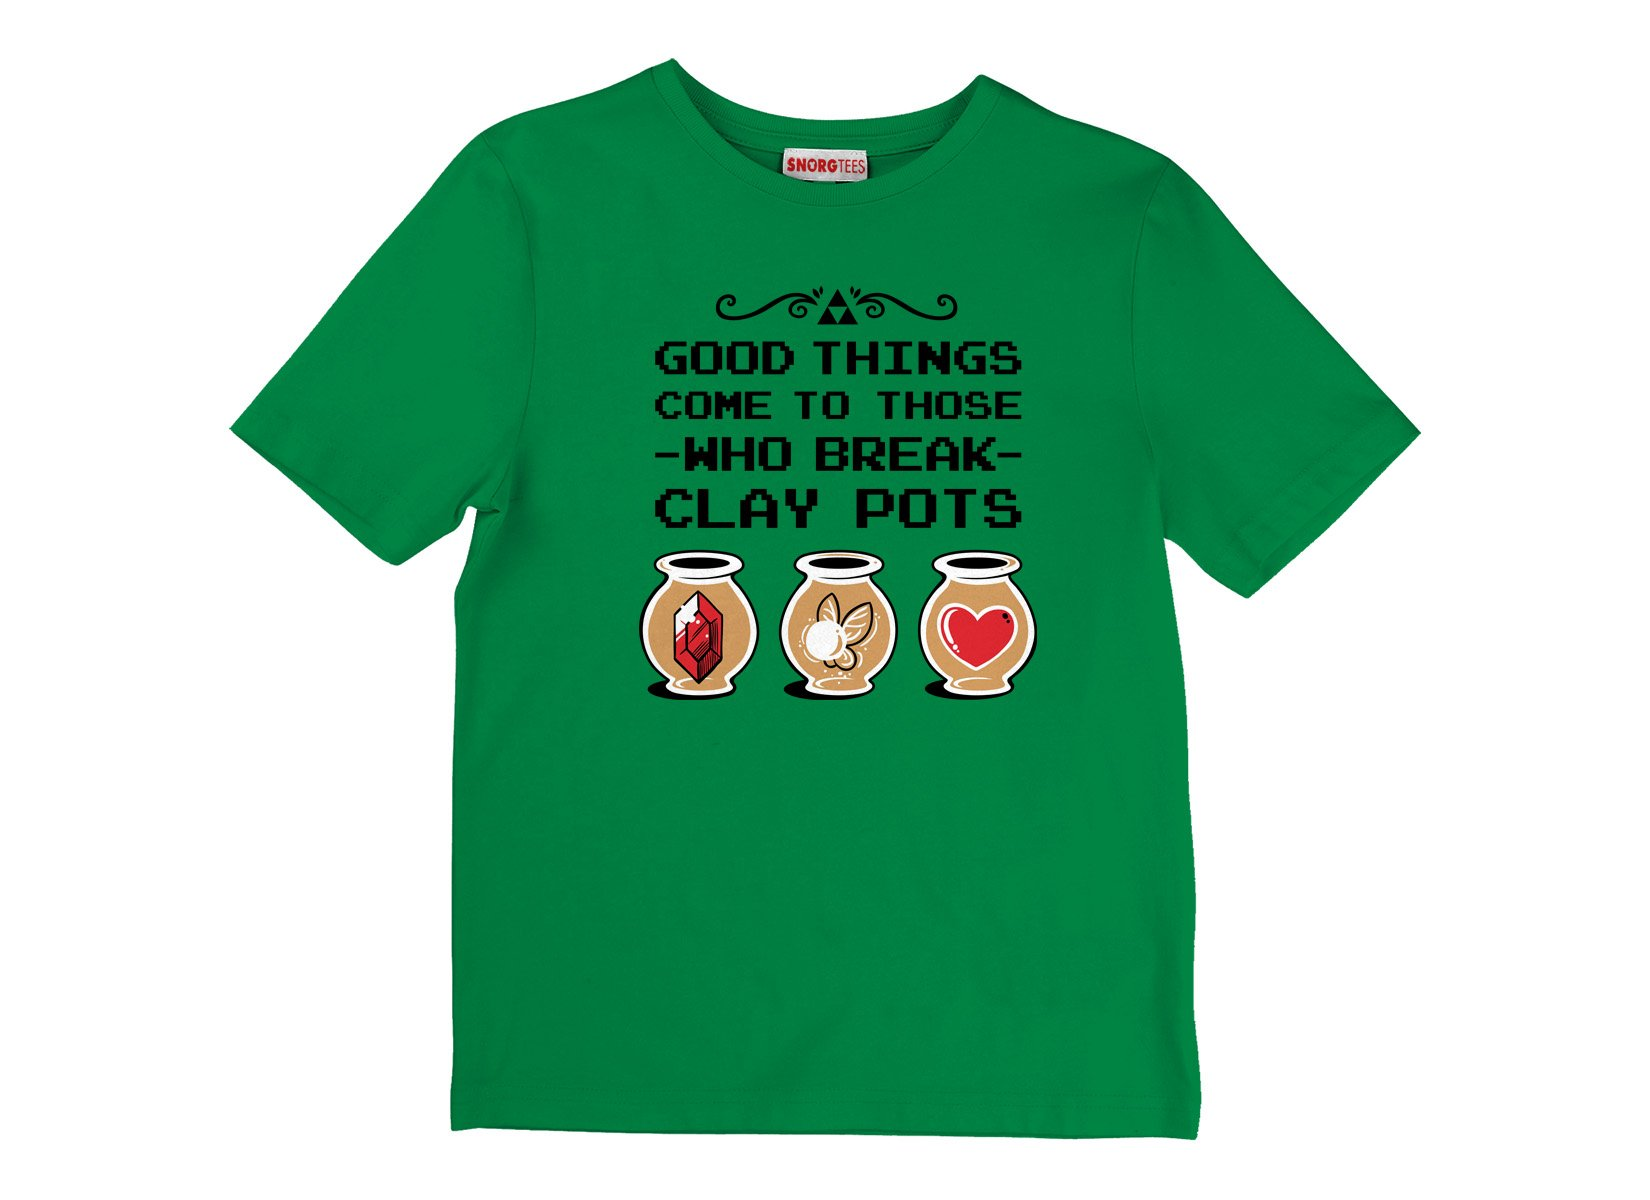 Good Things Come To Those Who Break Clay Pots on Kids T-Shirt